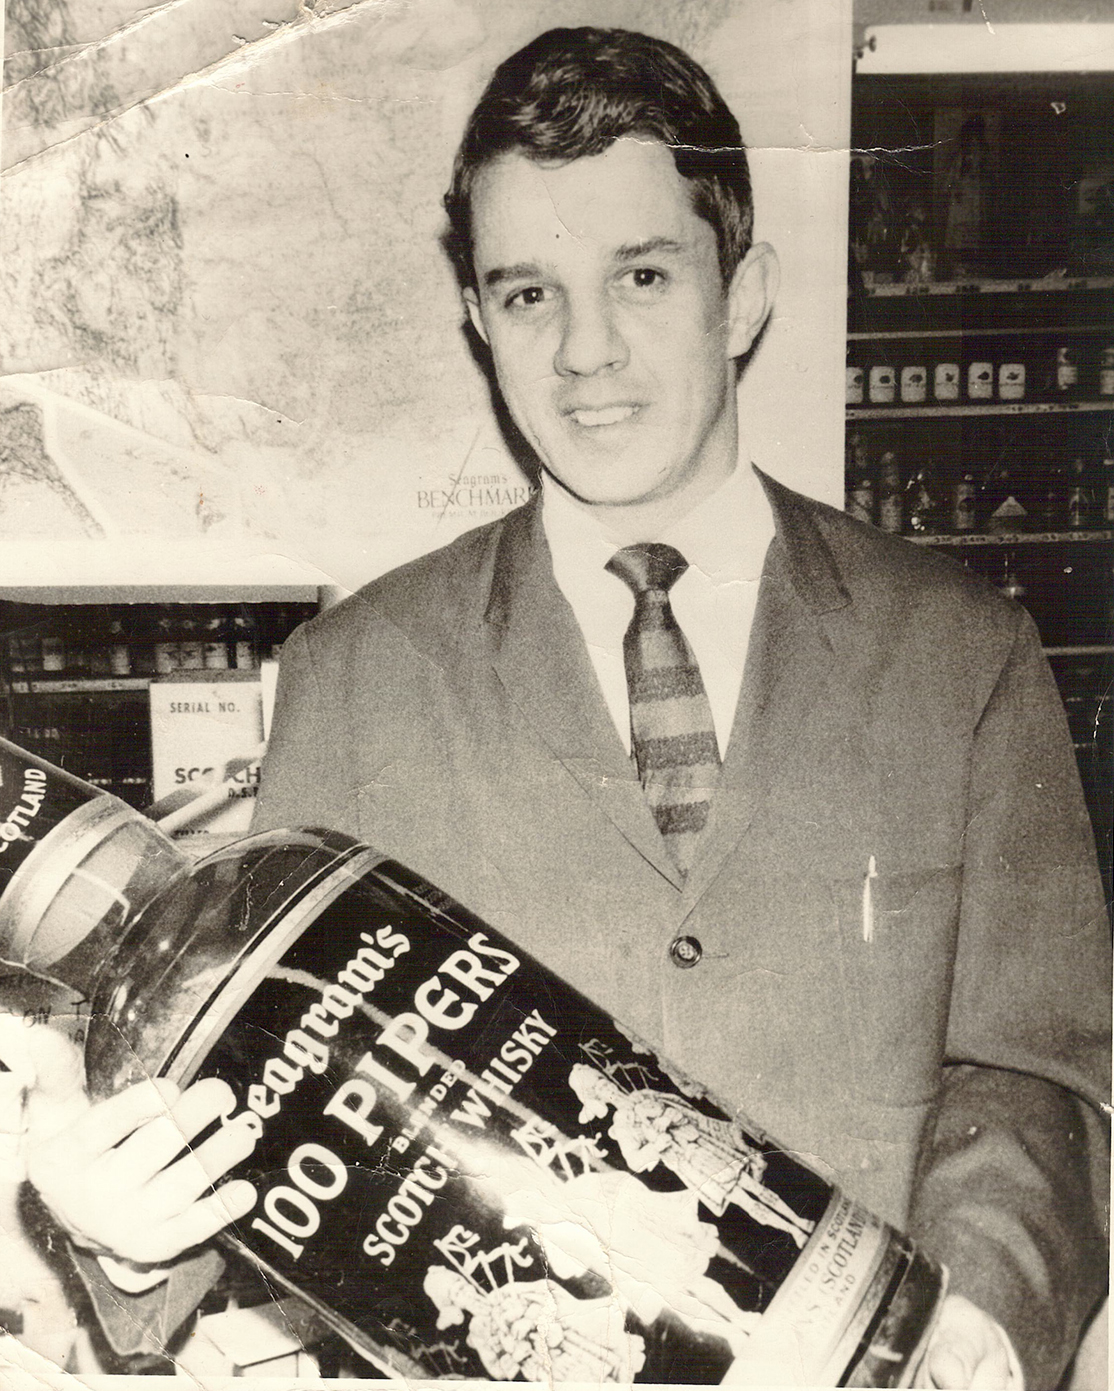 Bud Bremer in the early 1960s, when he first began working in the family store